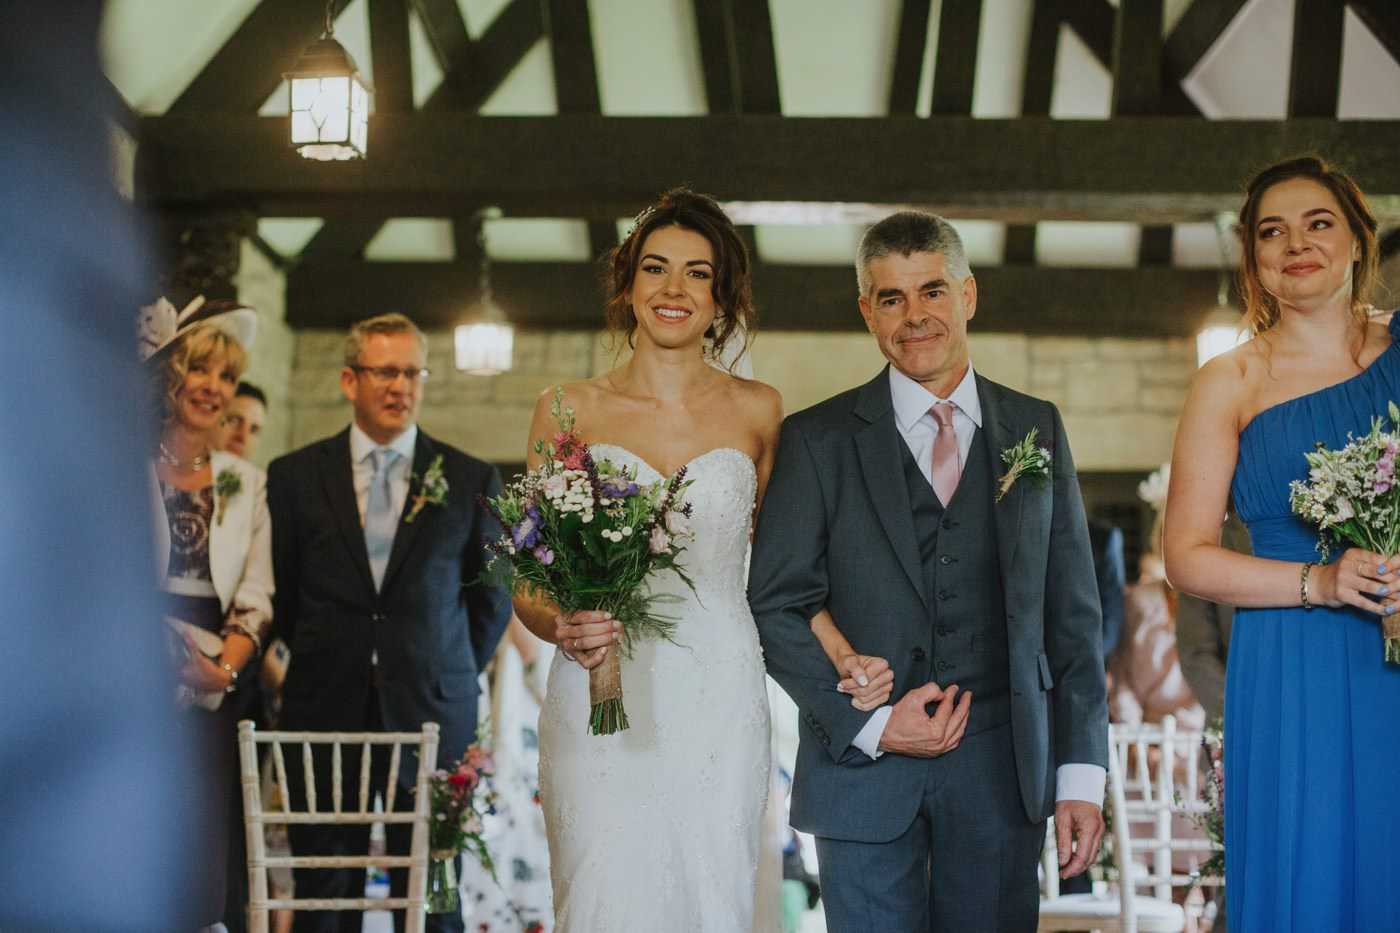 Matt & Emma | Hooton Pagnell Hall & Stable Arches 49